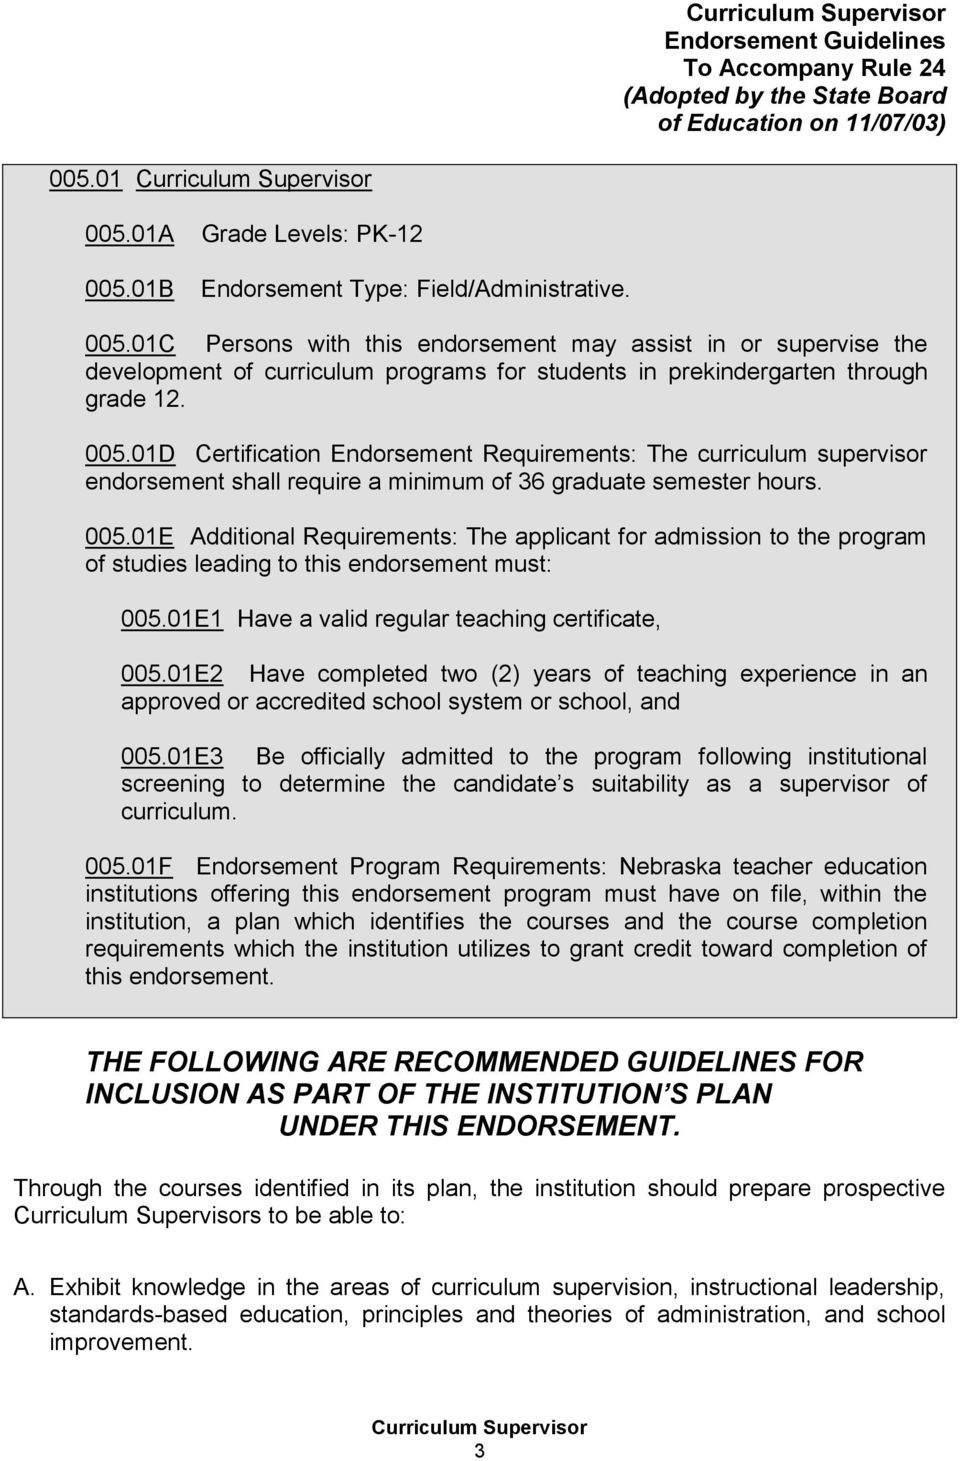 005.01D Certification Endorsement Requirements: The curriculum supervisor endorsement shall require a minimum of 36 graduate semester hours. 005.